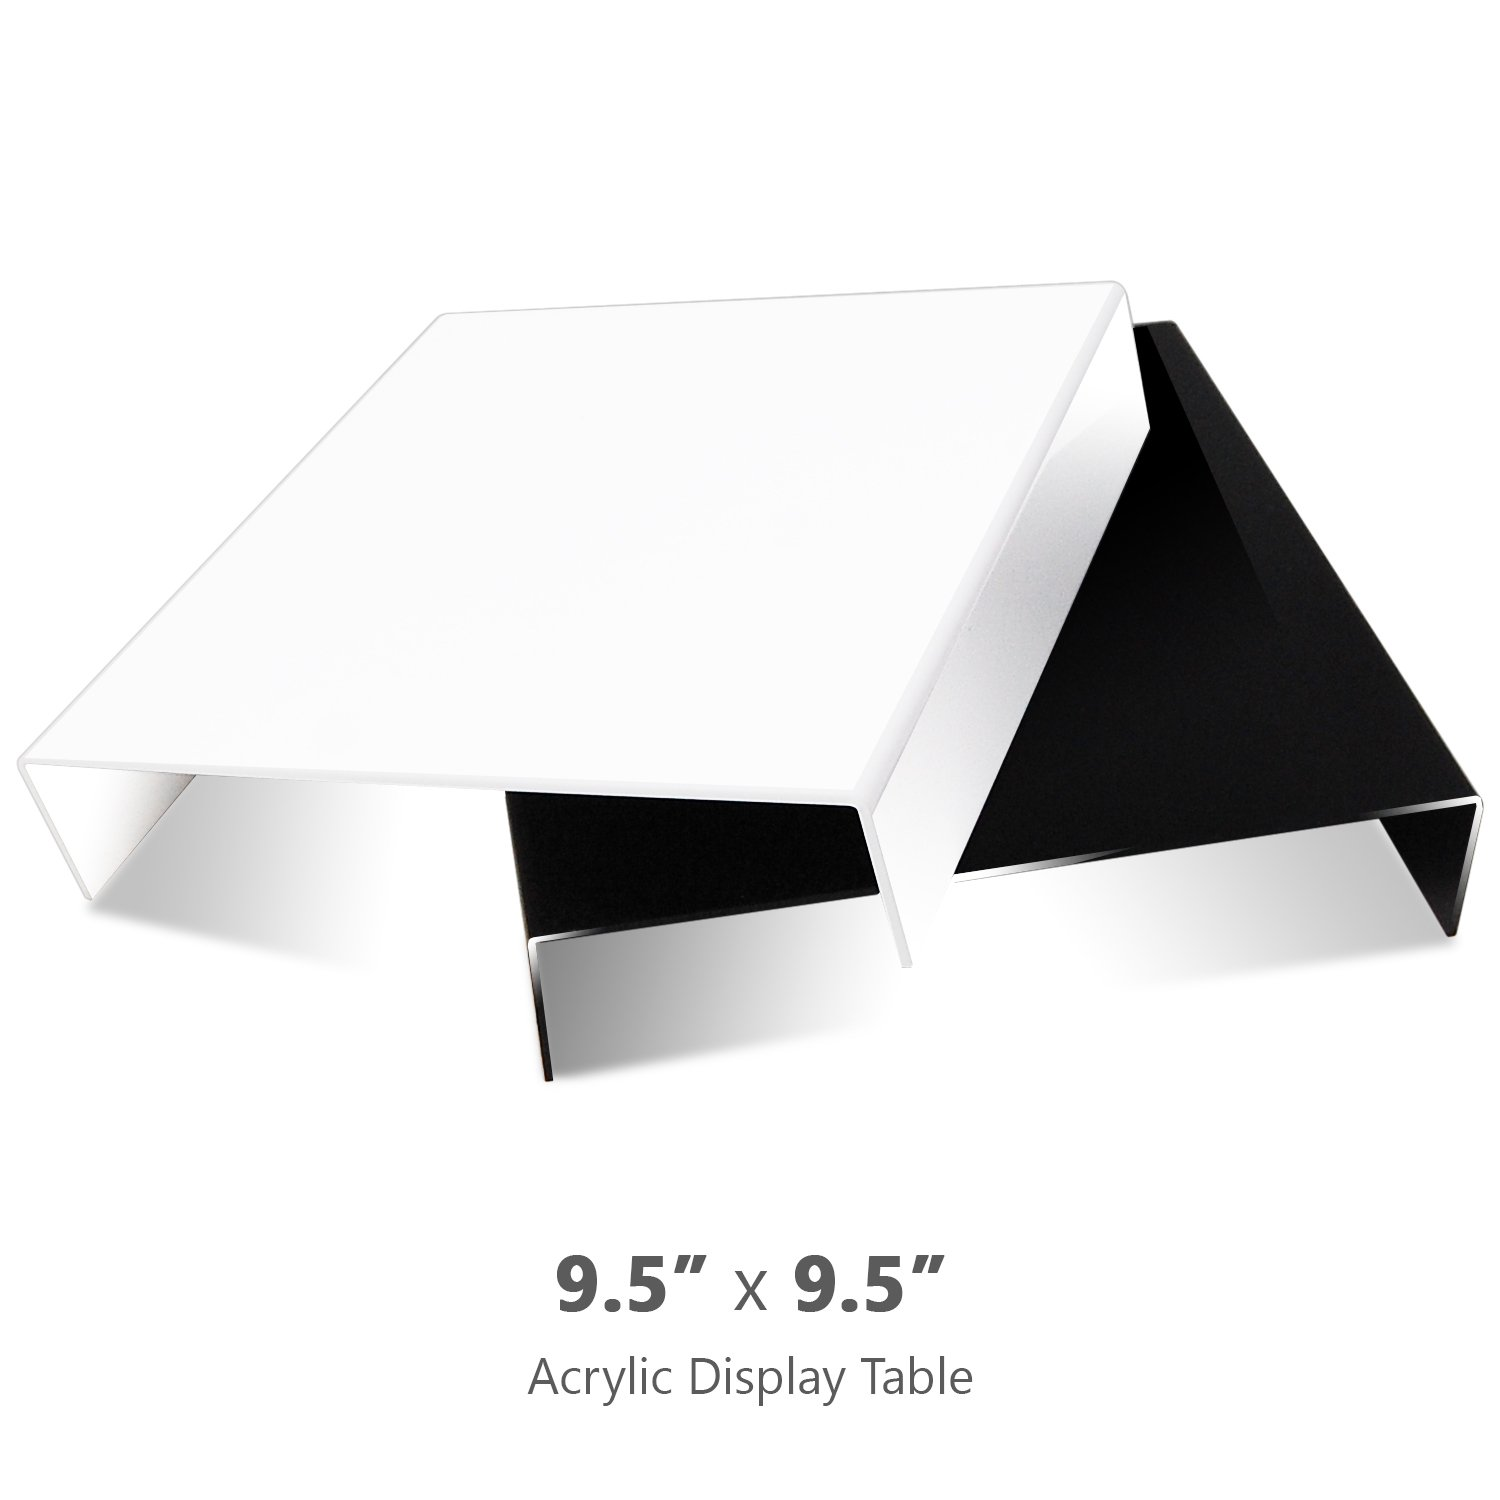 Julius Studio 2 Pcs 9.5 x 9.5 Inch Tabletop Acrylic Reflective Display Black & White for Product Photography, JSAG373 by Julius Studio